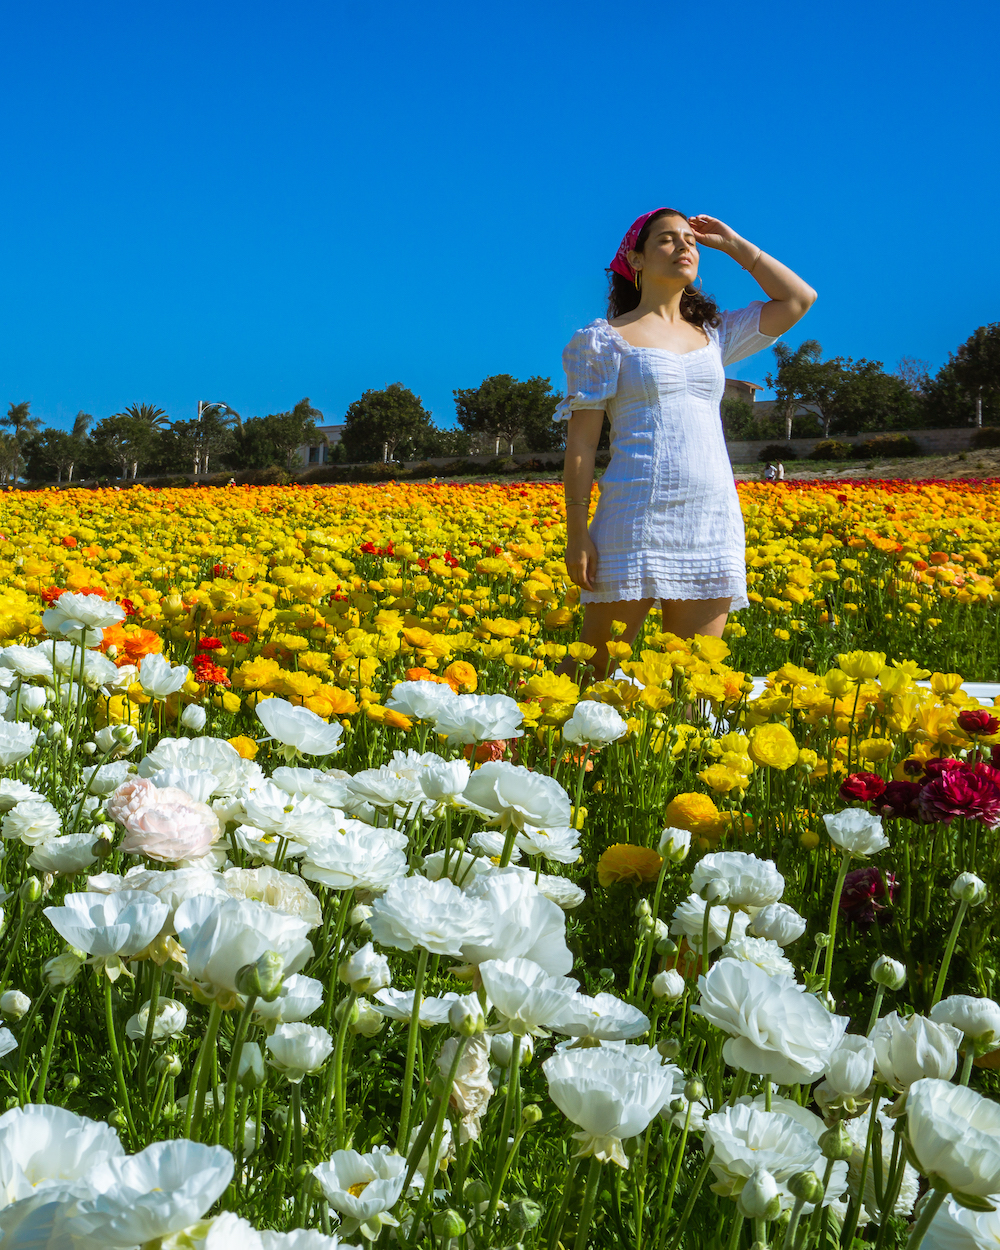 woman in white dress in white and yellow ranunculus flower field carlsbad